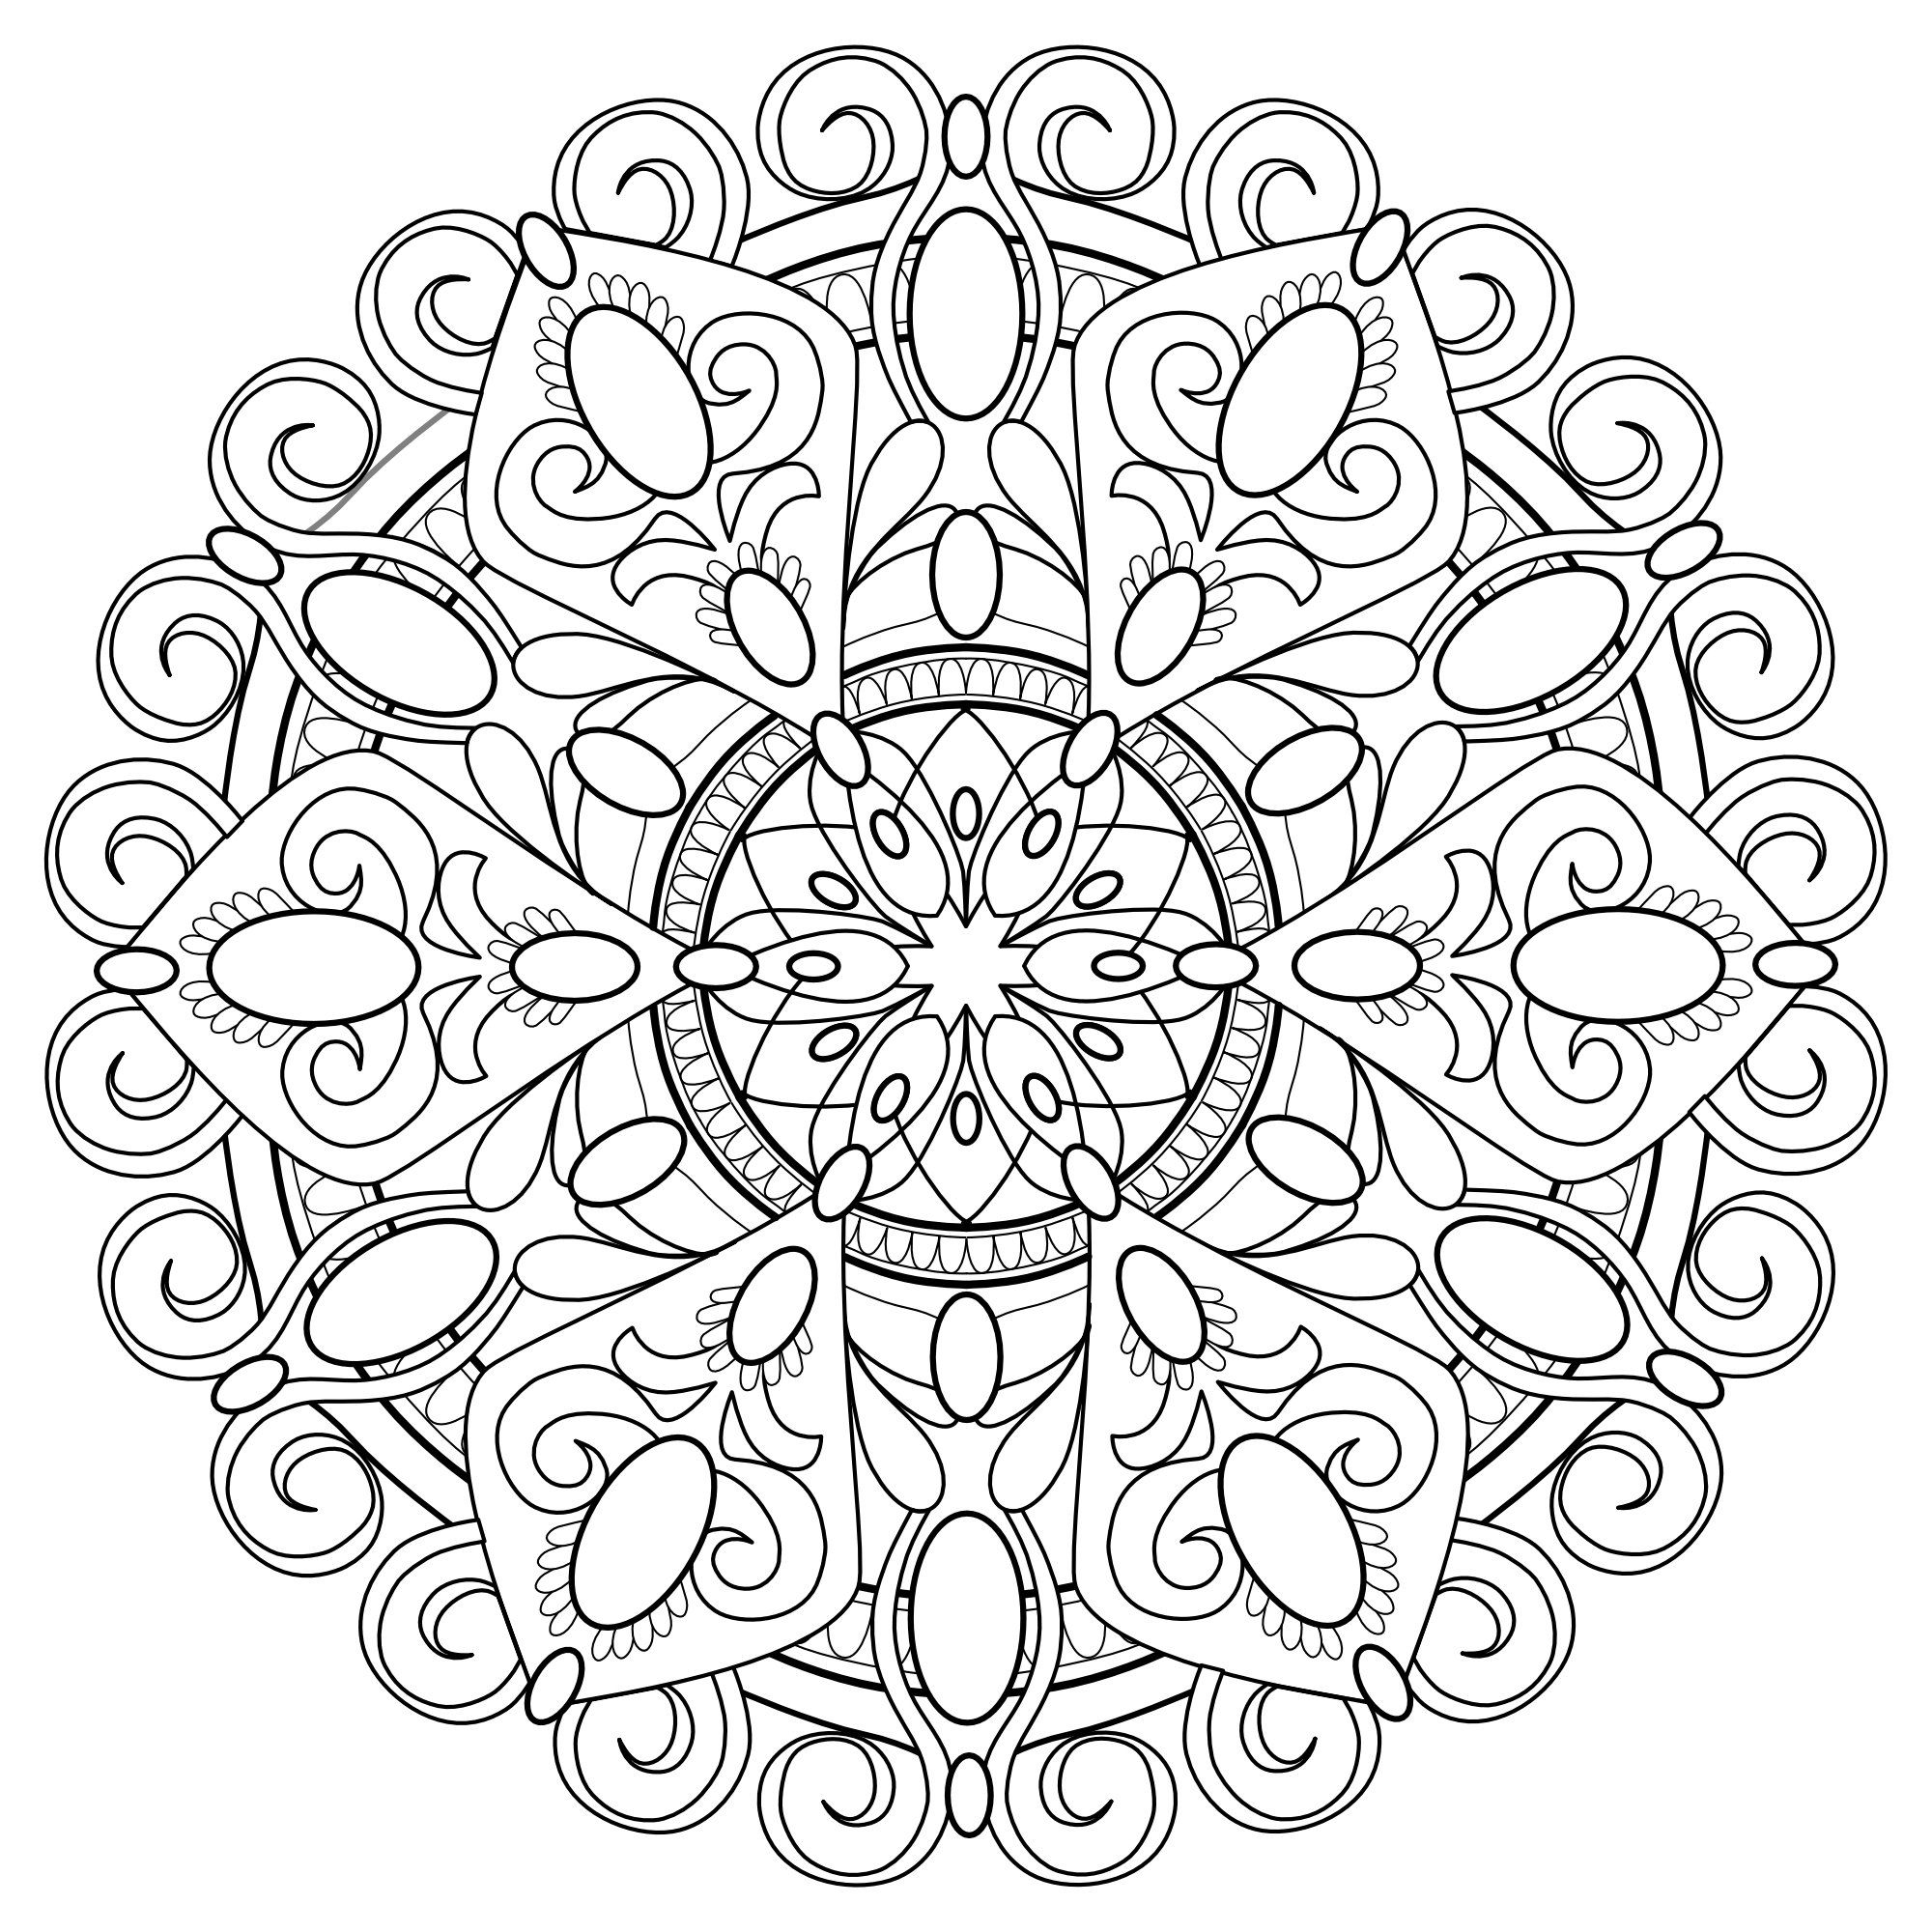 Mandala Madness Coloring Book No 4 5 Printable Pdf Coloring Etsy In 2020 Mandala Coloring Pages Coloring Books Pattern Coloring Pages